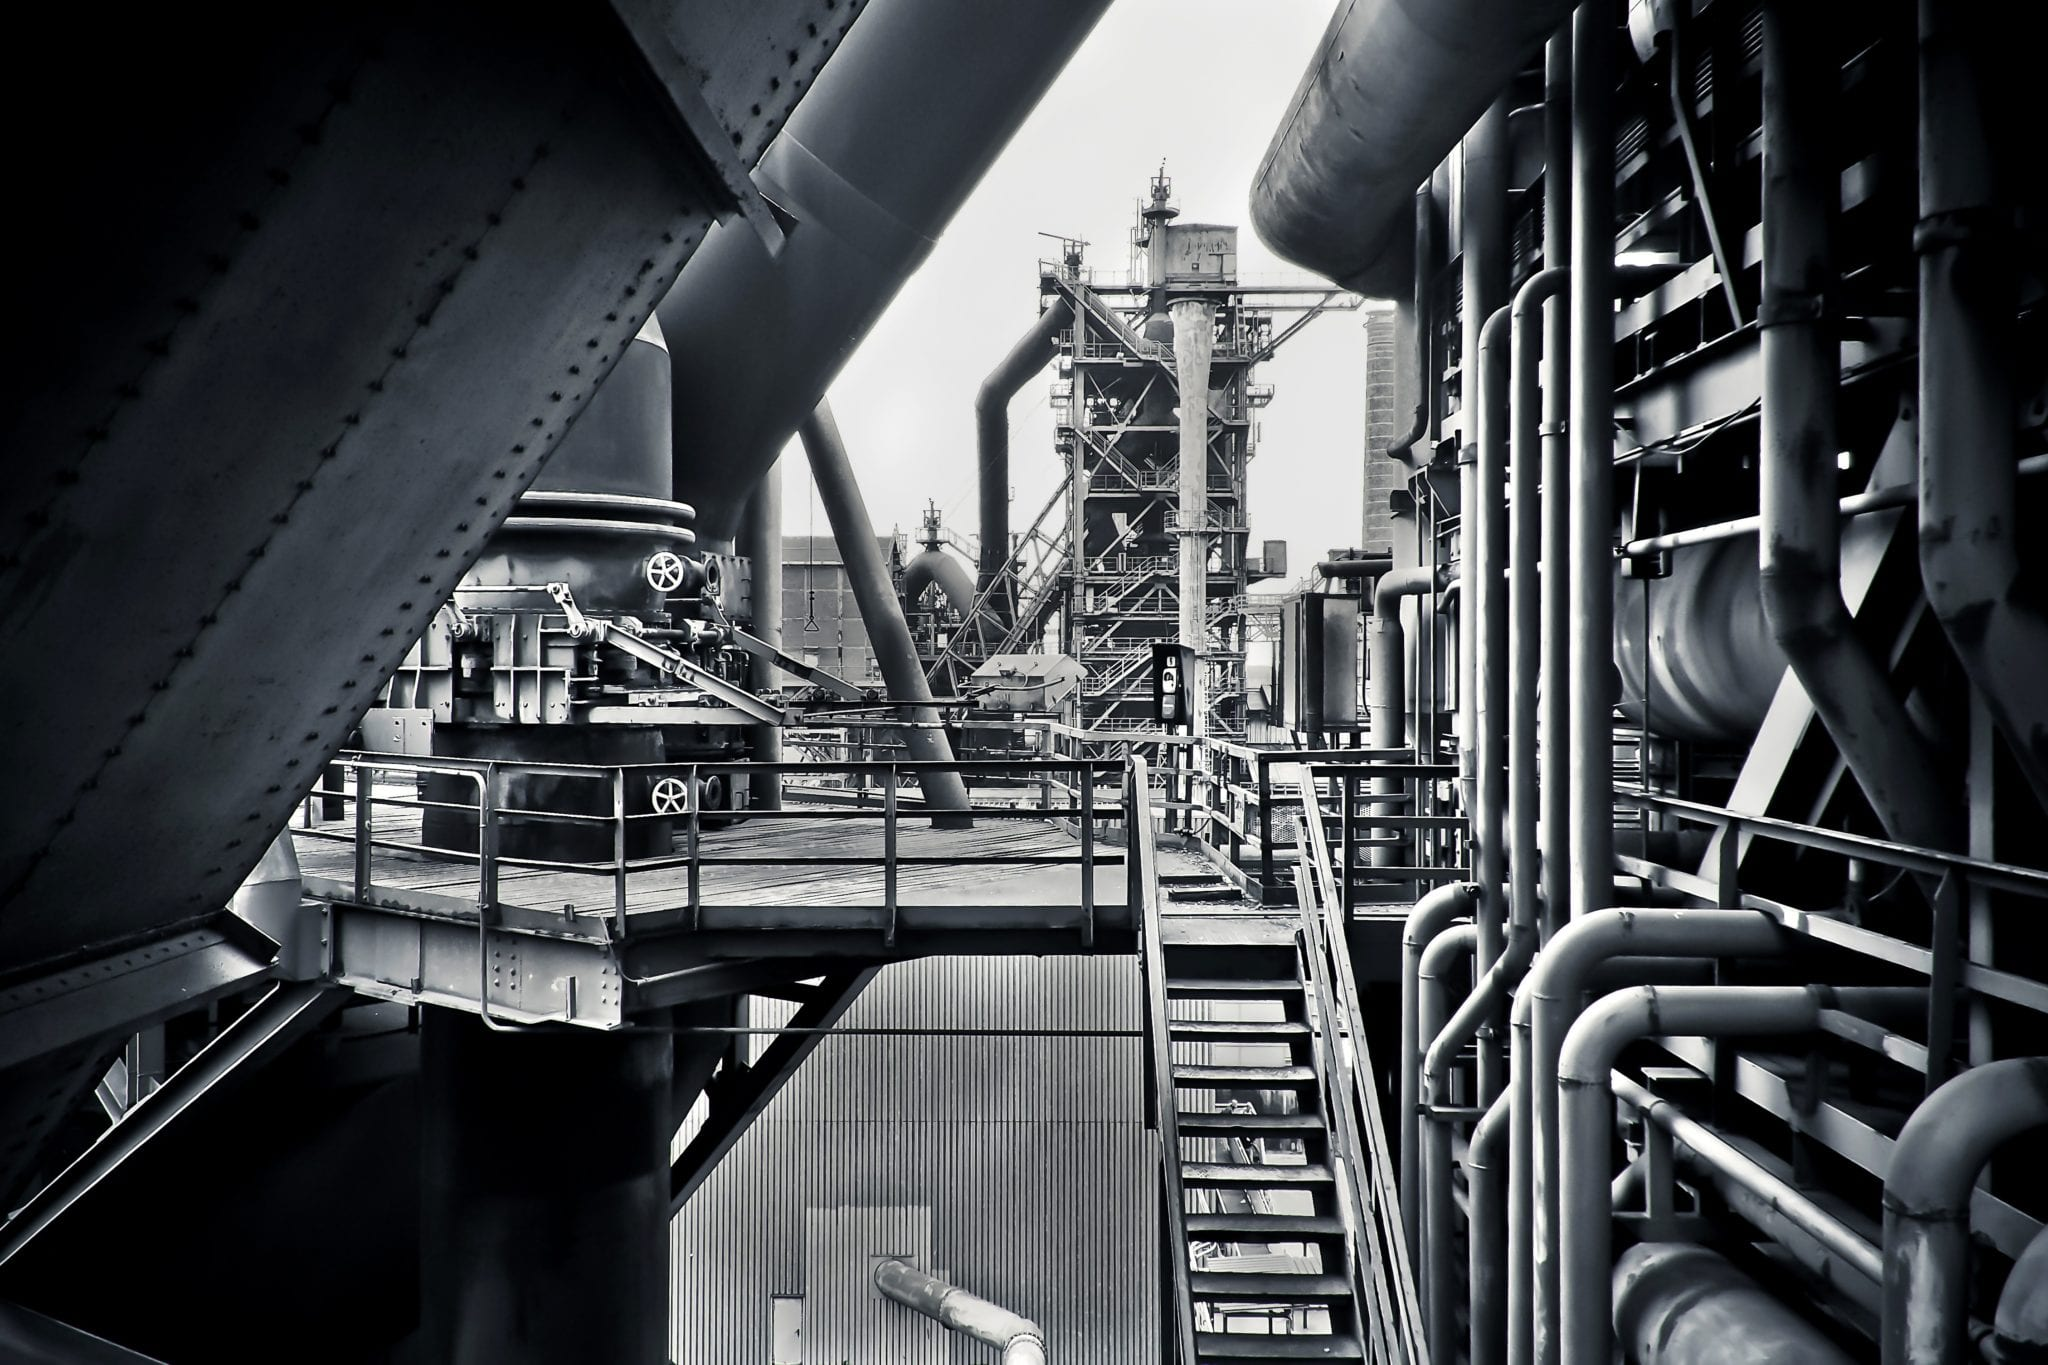 black-and-white-factory-industrial-plant-415945